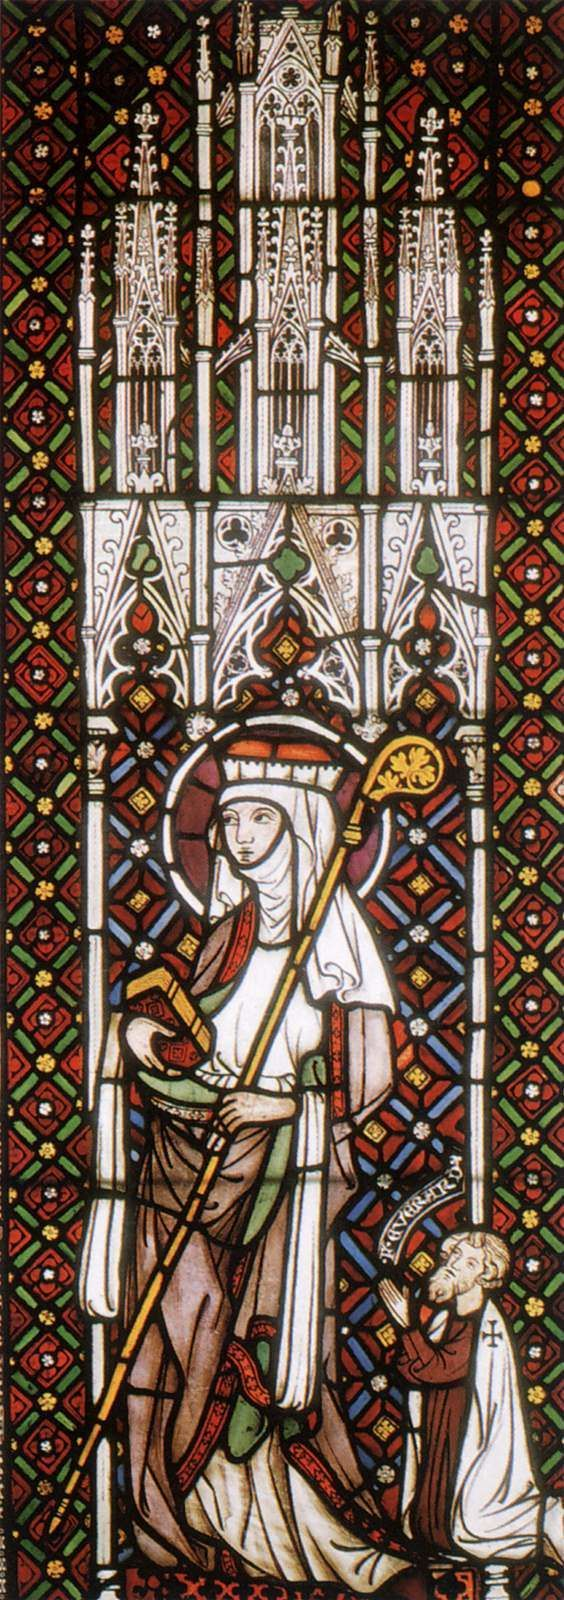 Unknown.  St. Gertrude, 1280s. Originally located in the former (now demolished) Dominican convent of St. Gertrude in Cologne.  Web Gallery of Art.